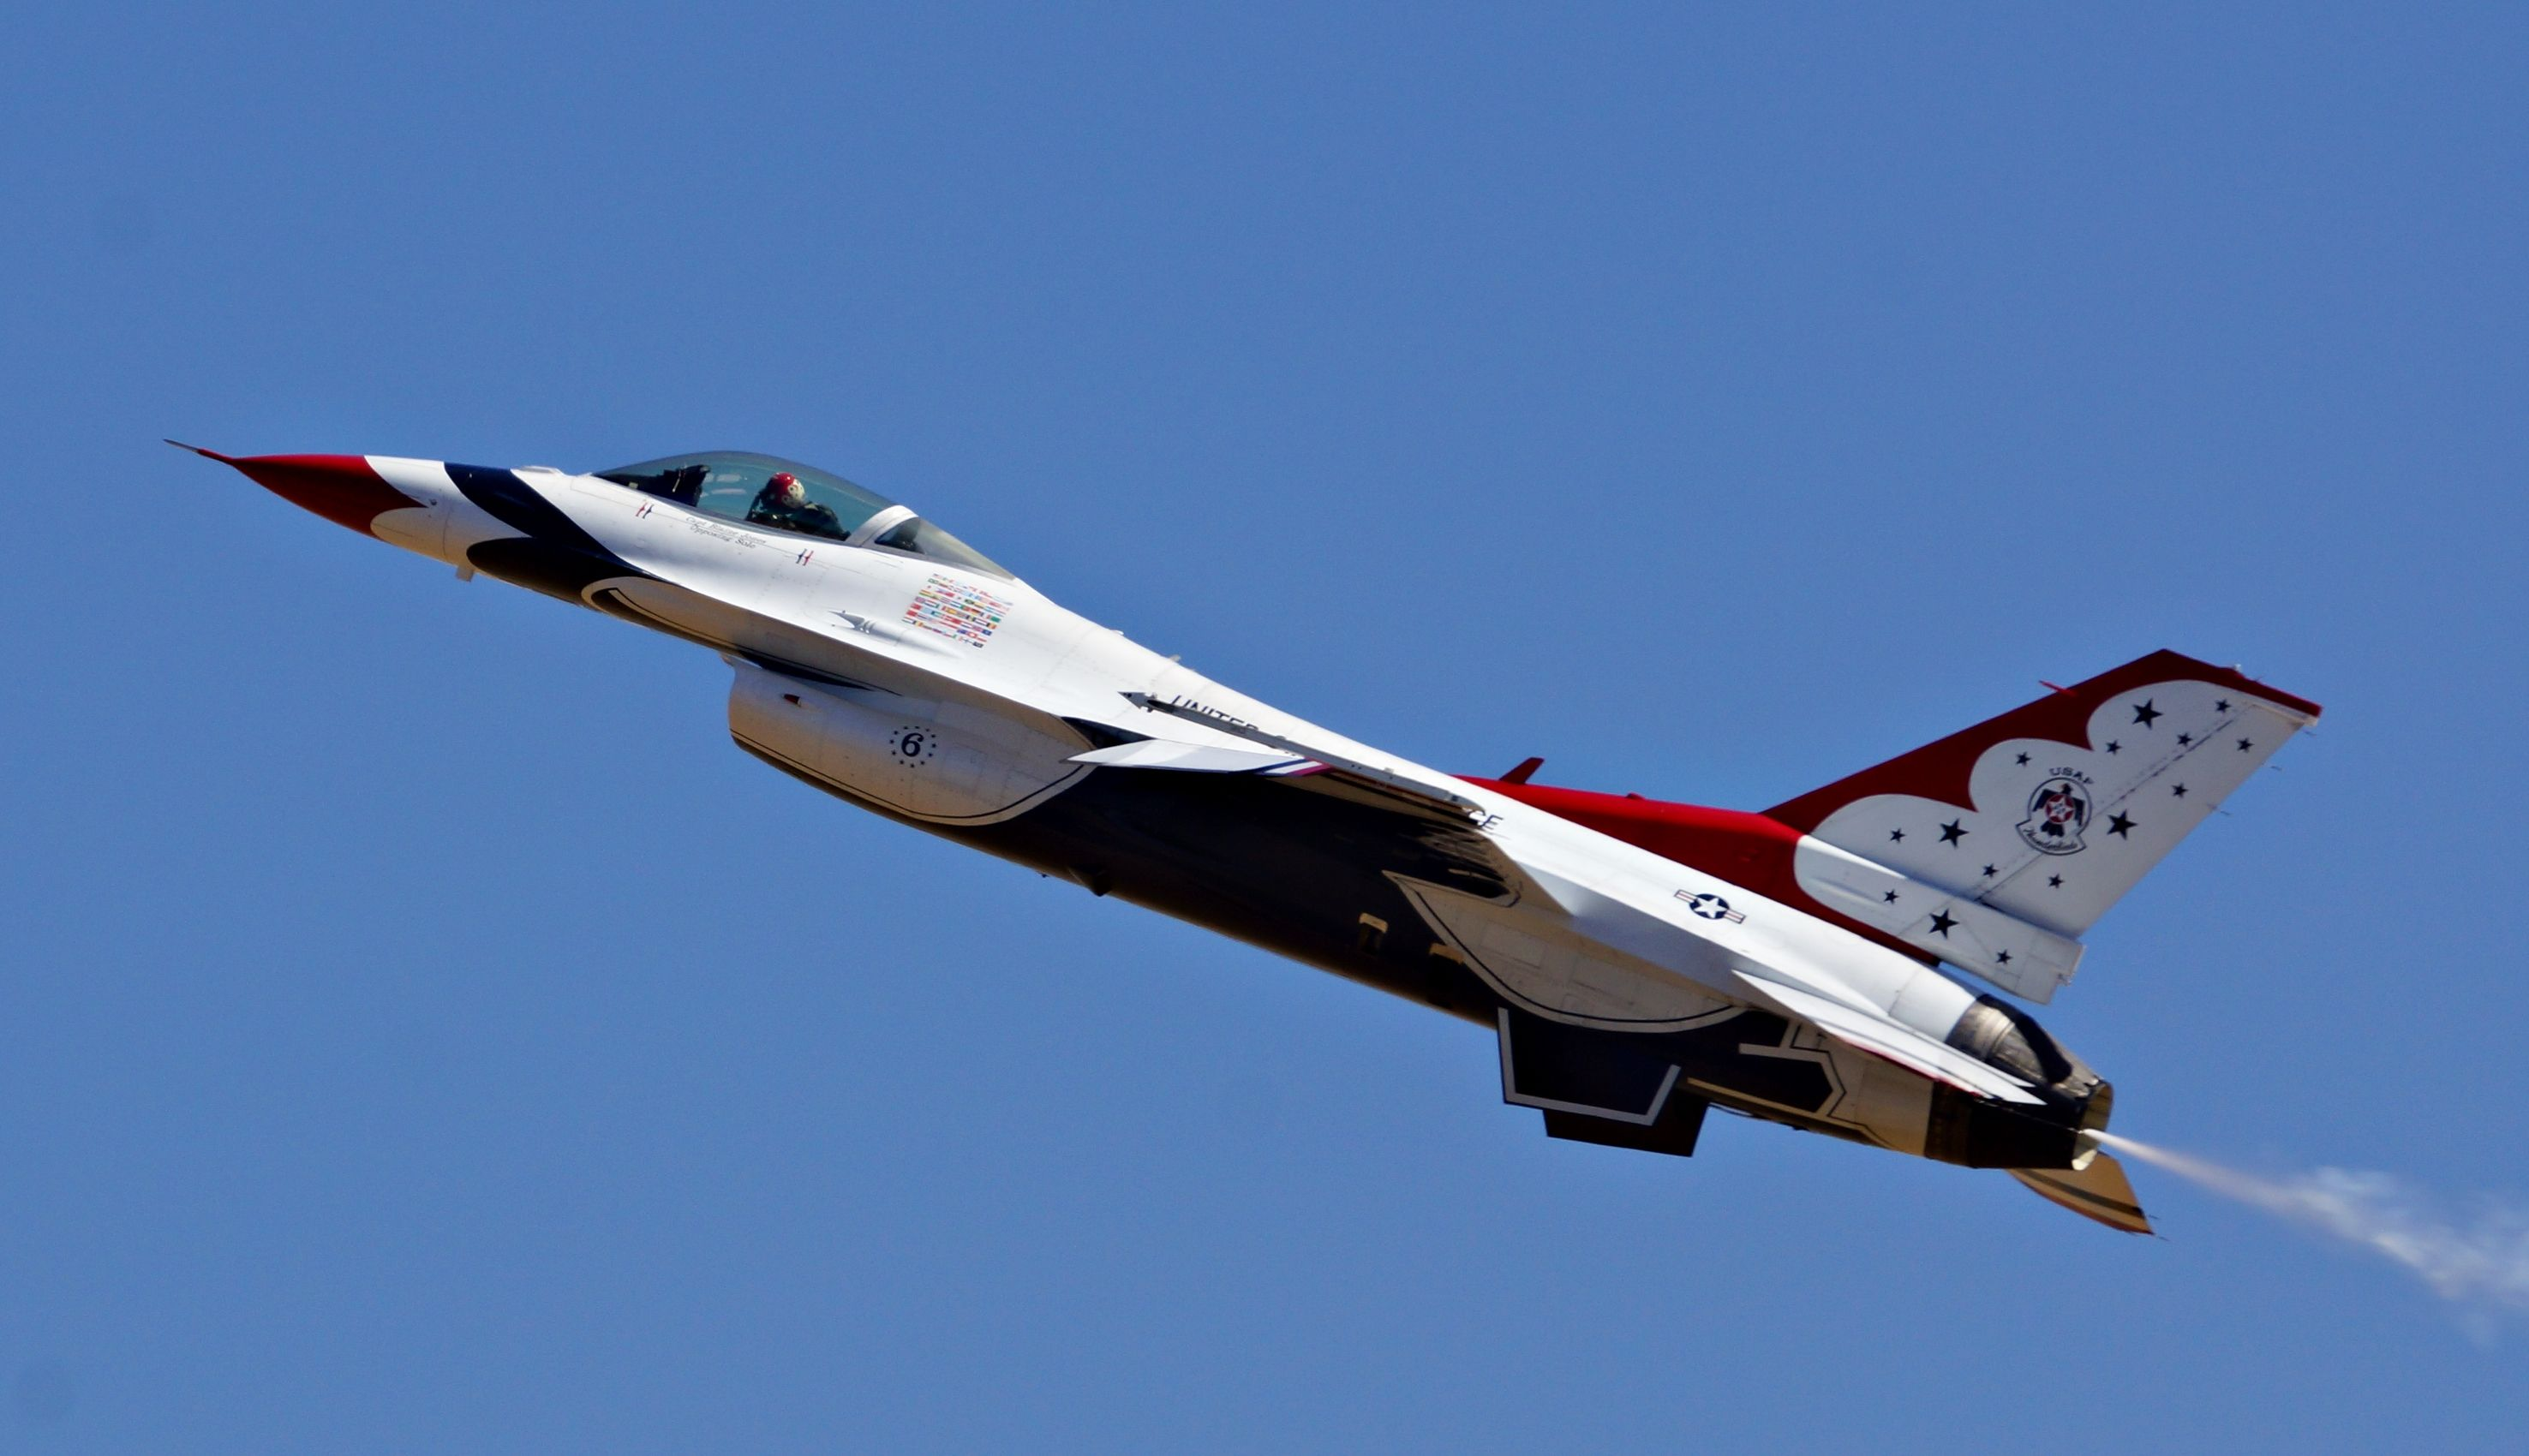 The U.S. Air Force Thunderbirds have finalized their 2014